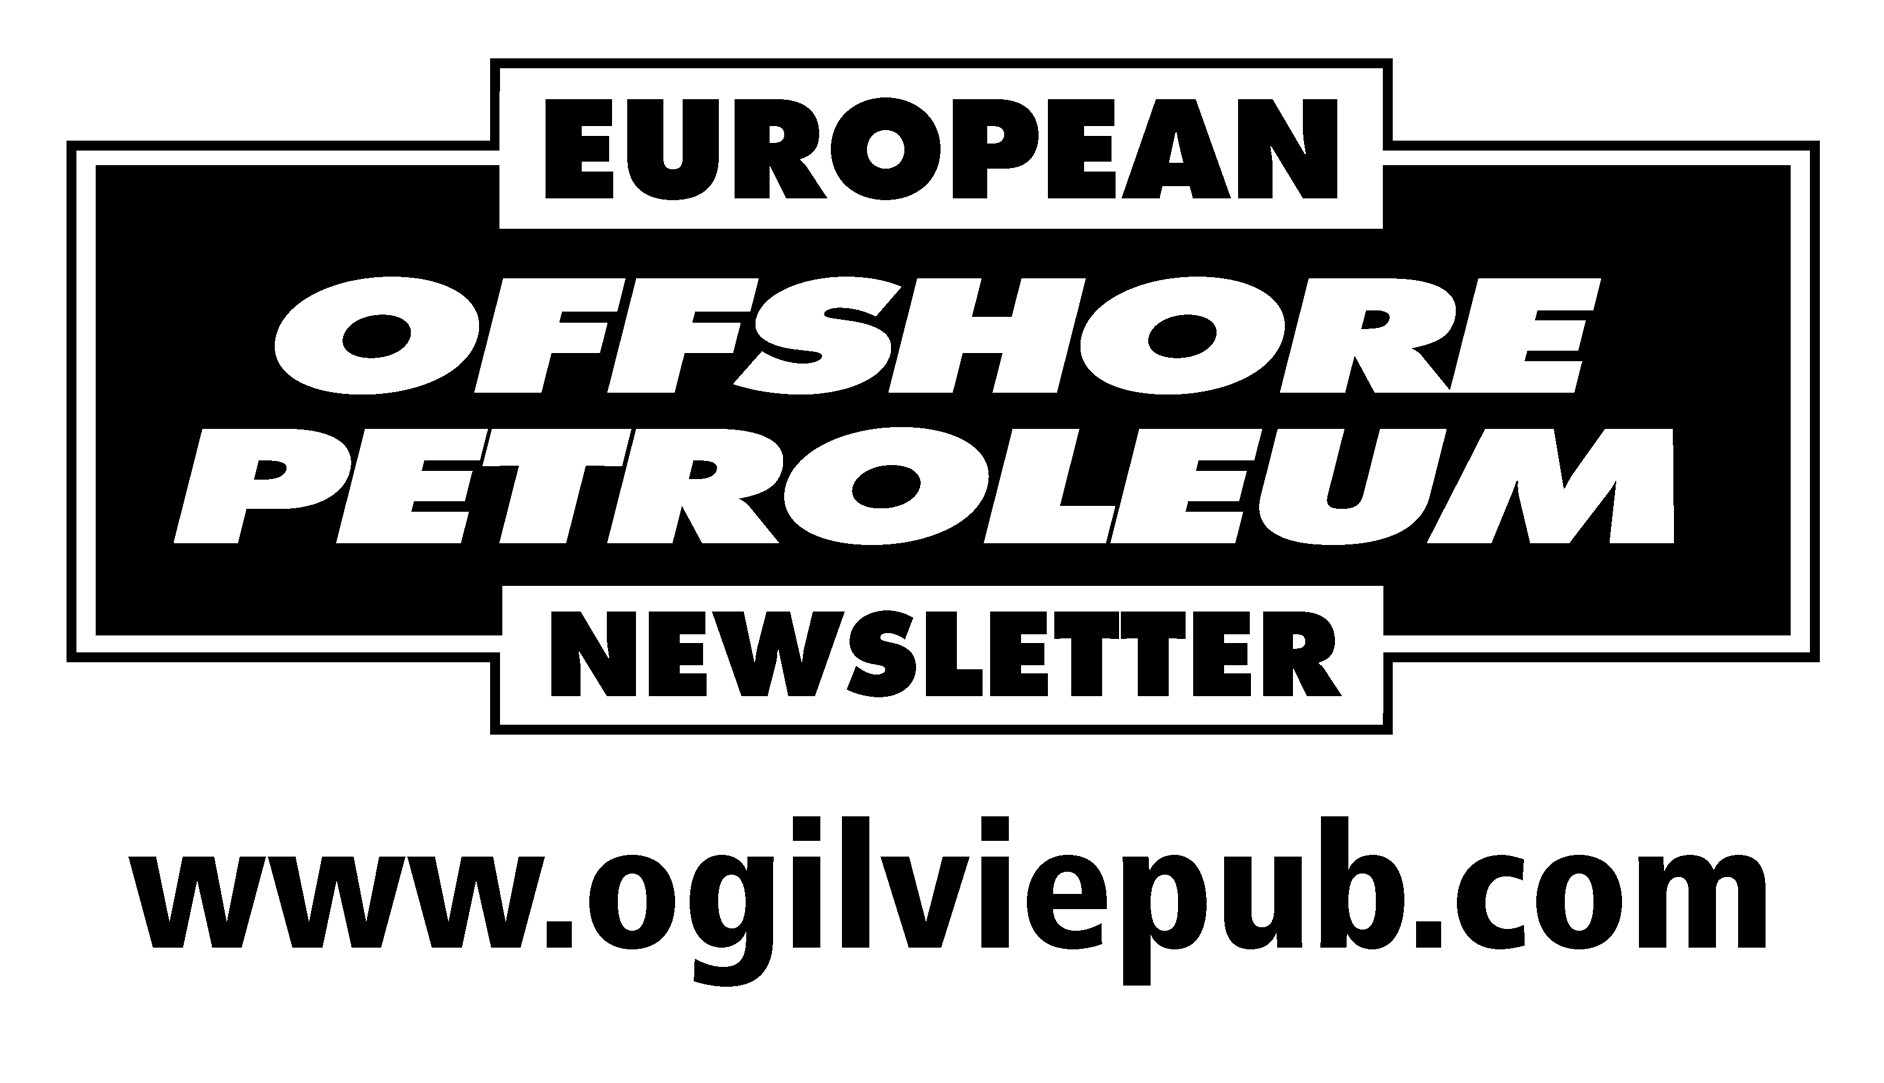 European Offshore Petroleum